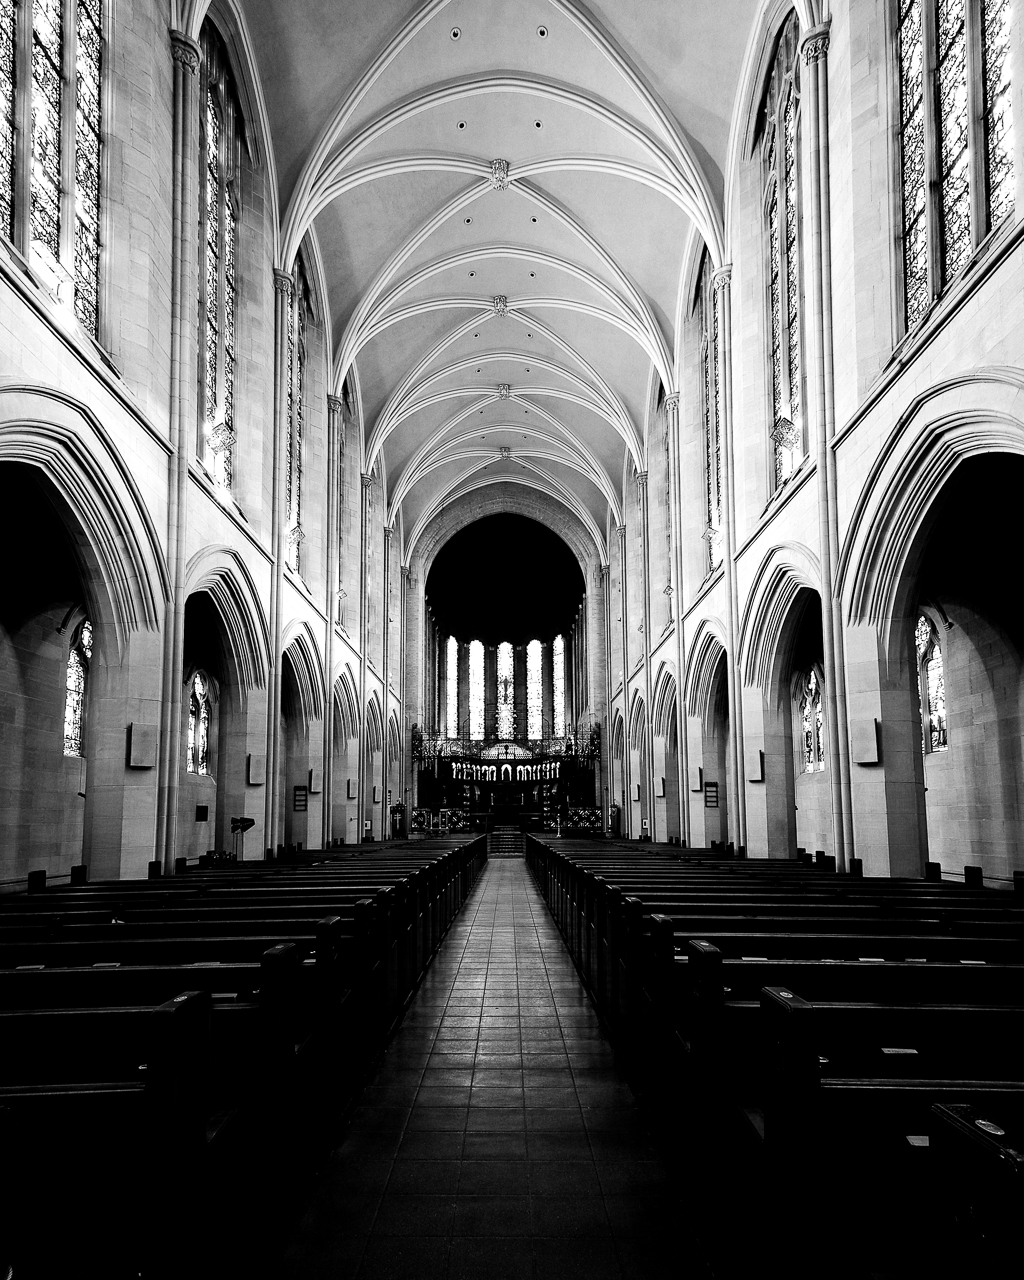 The chapel of St. John's Episcopal Cathedral in Denver, Colorado